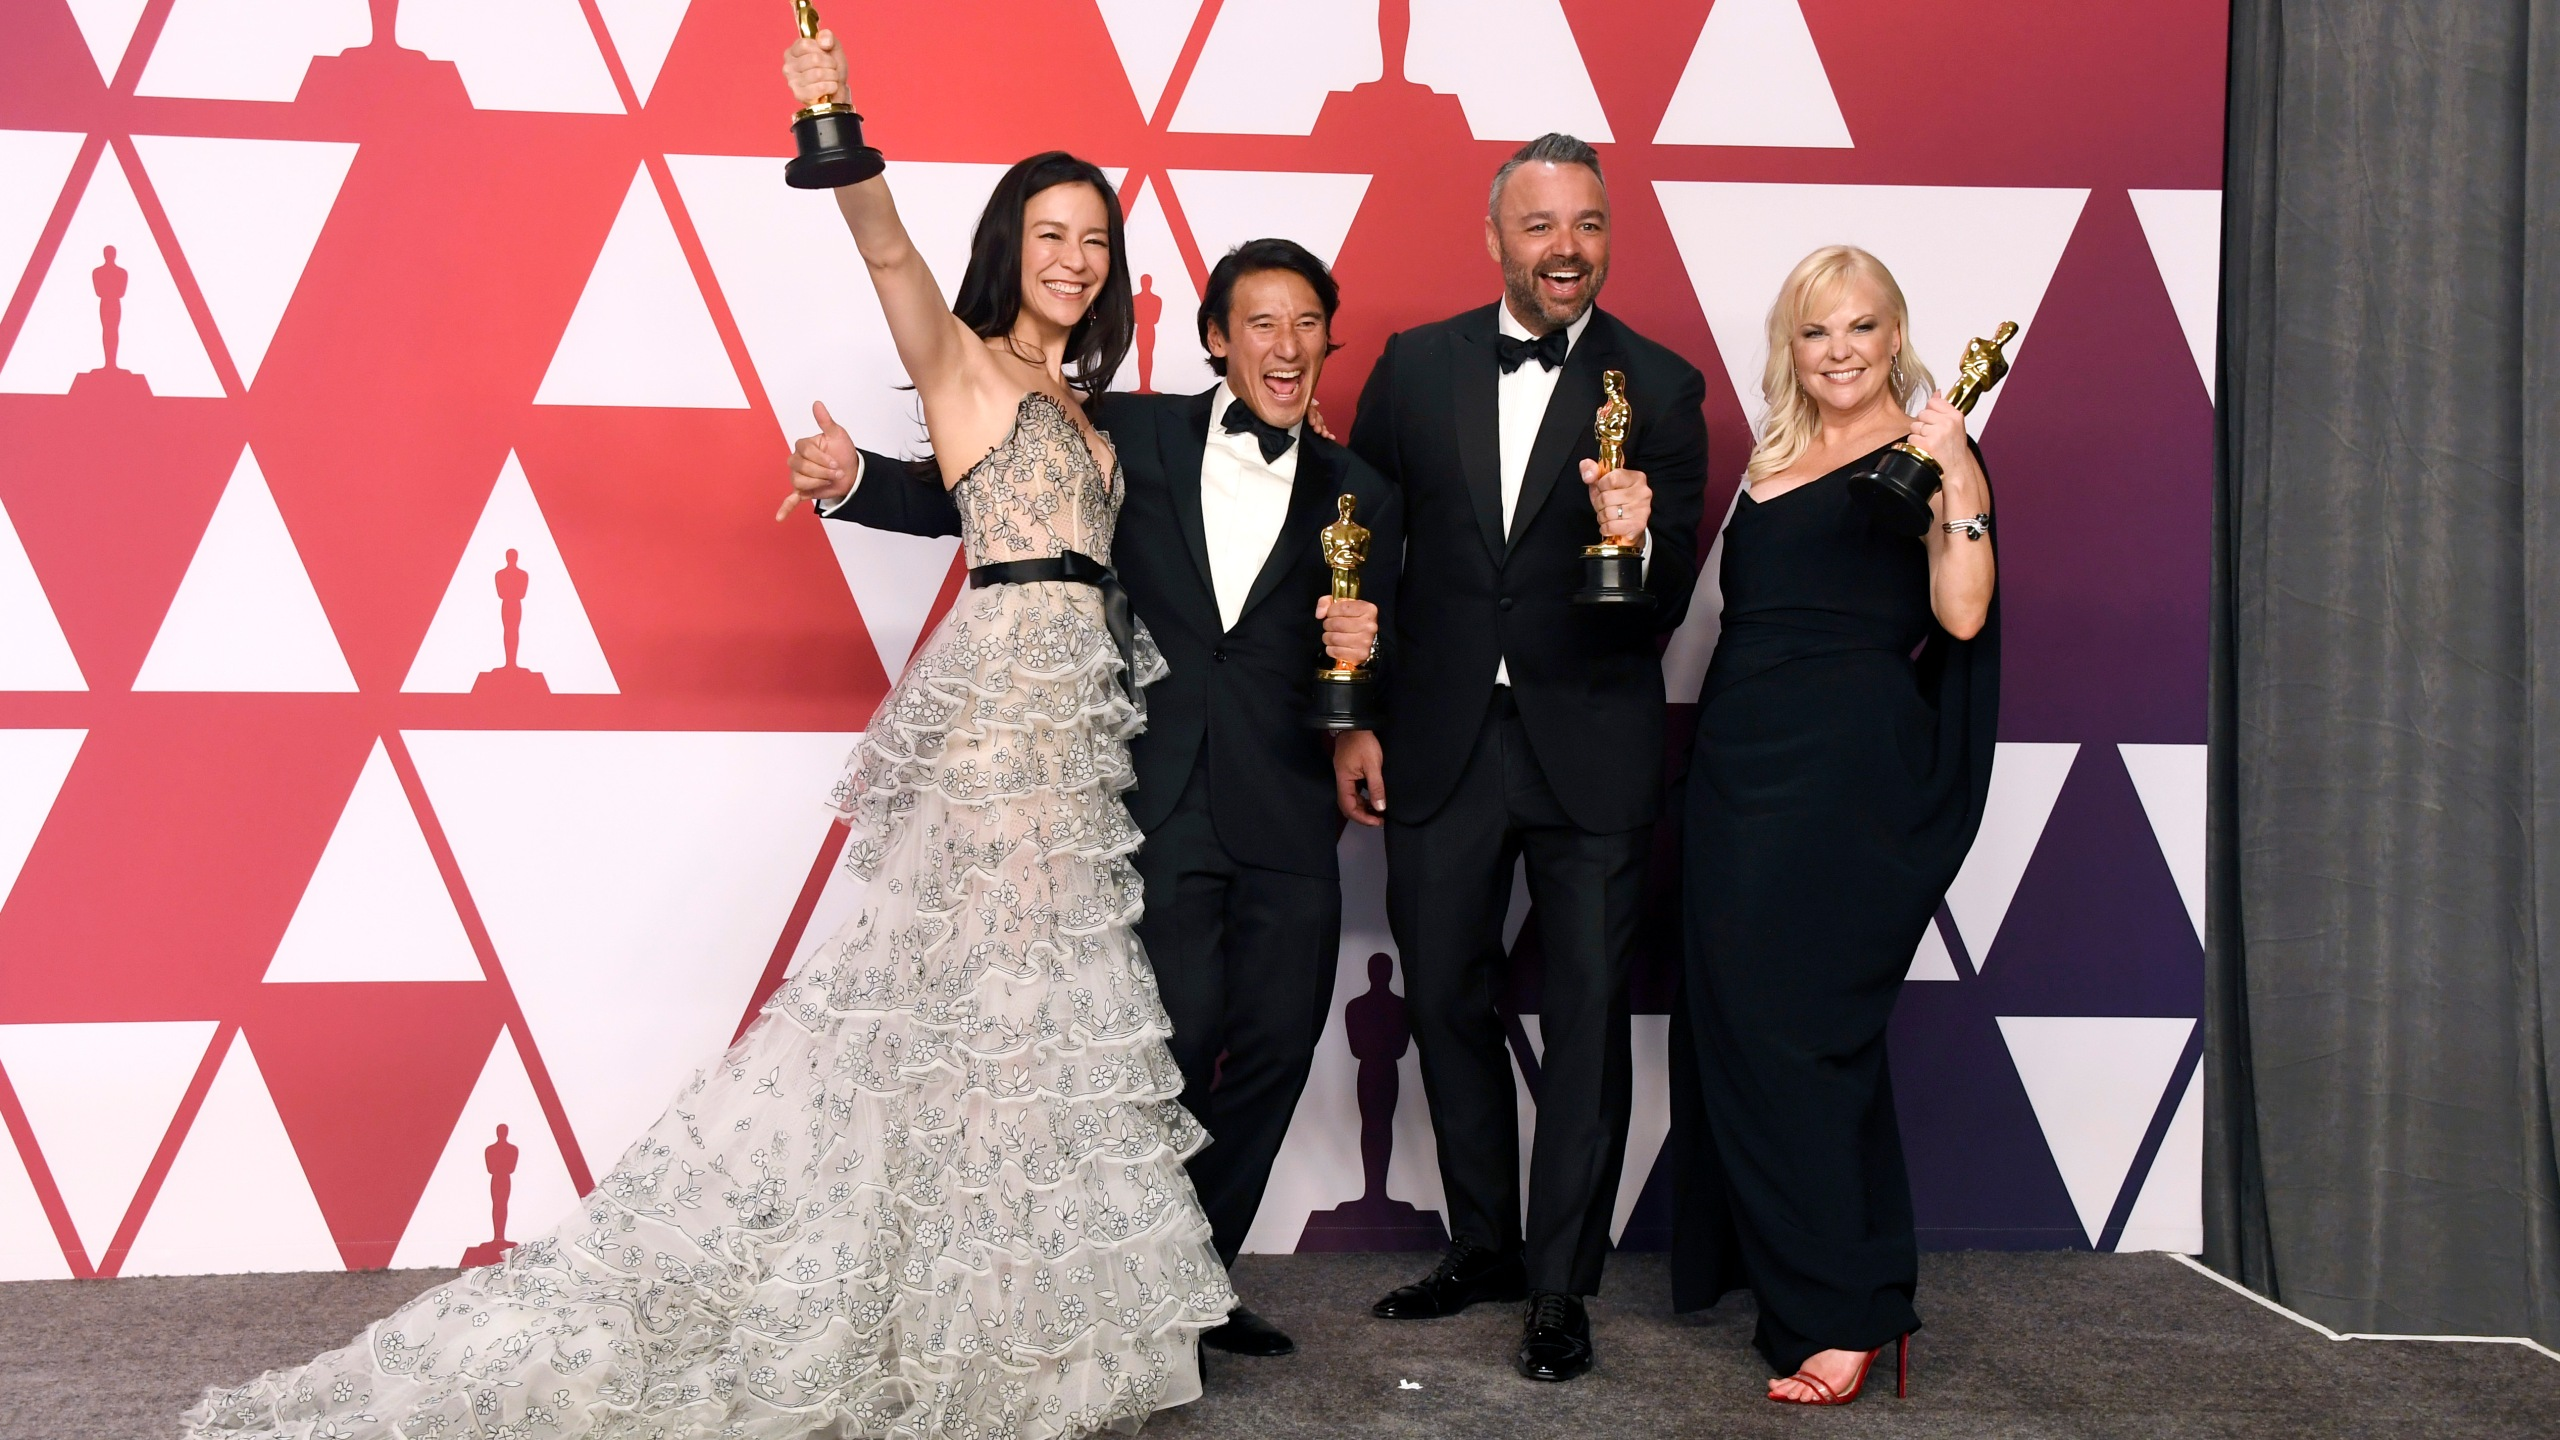 (L-R) Elizabeth Chai Vasarhelyi, Jimmy Chin, Evan Hayes, and Shannon Dill, winners of Best Documentary Feature for 'Free Solo,' pose in the press room during the 91st Annual Academy Awards at Hollywood and Highland on February 24, 2019 in Hollywood, California. (Credit: Frazer Harrison/Getty Images)